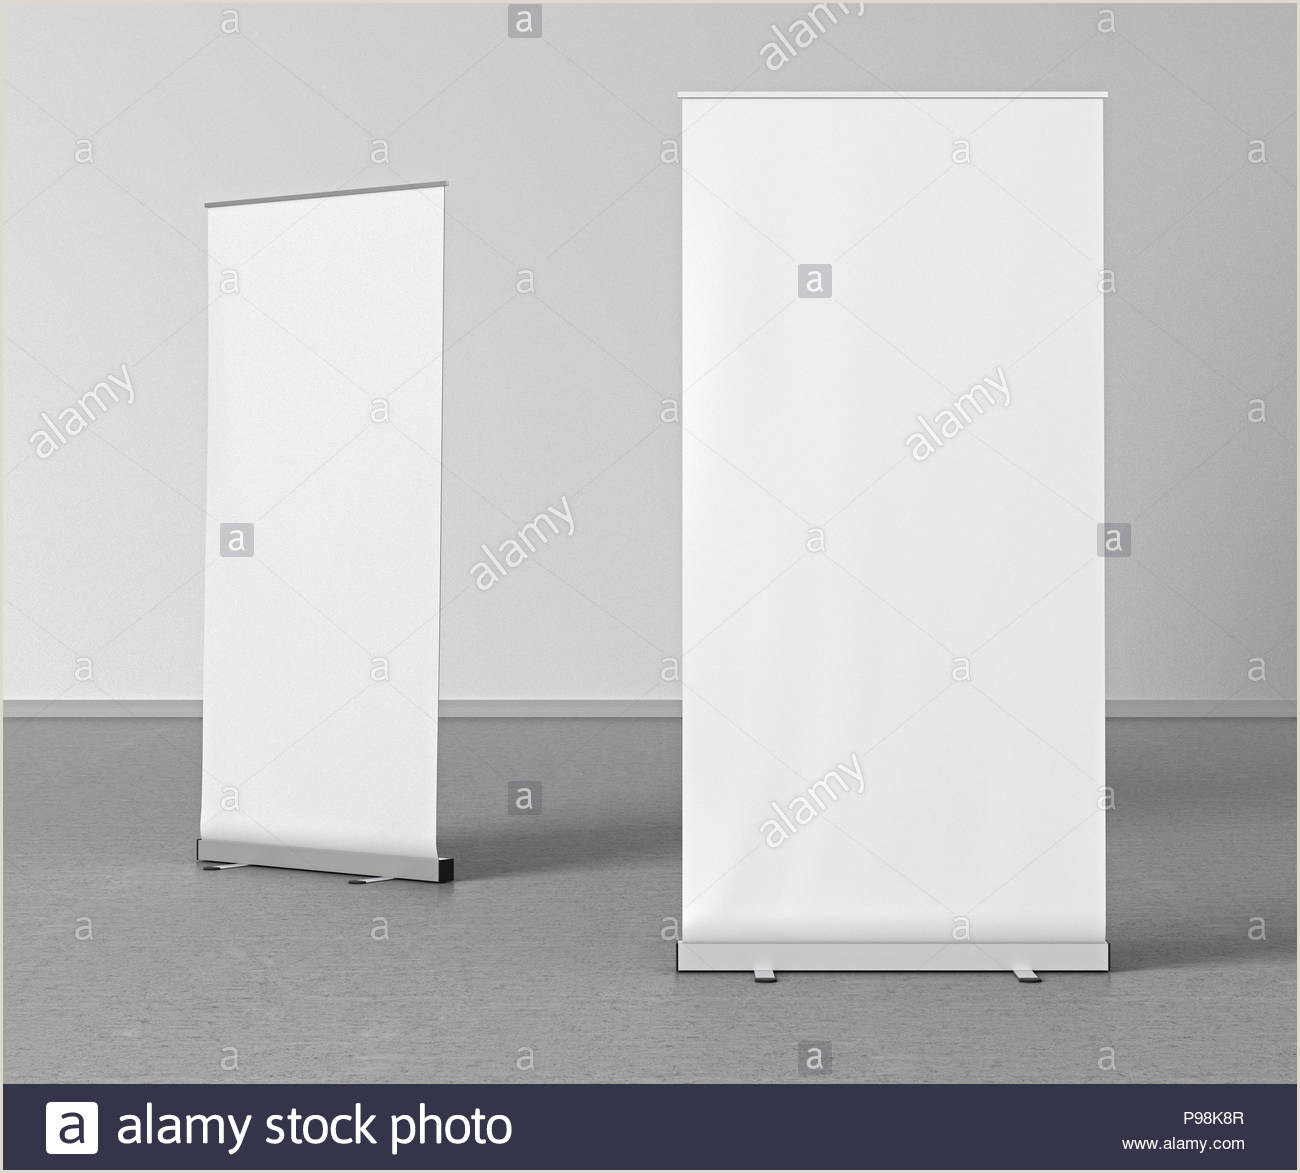 Floor Banner Stand Blank White Roll Up Banner Stands On Gray Floor Include